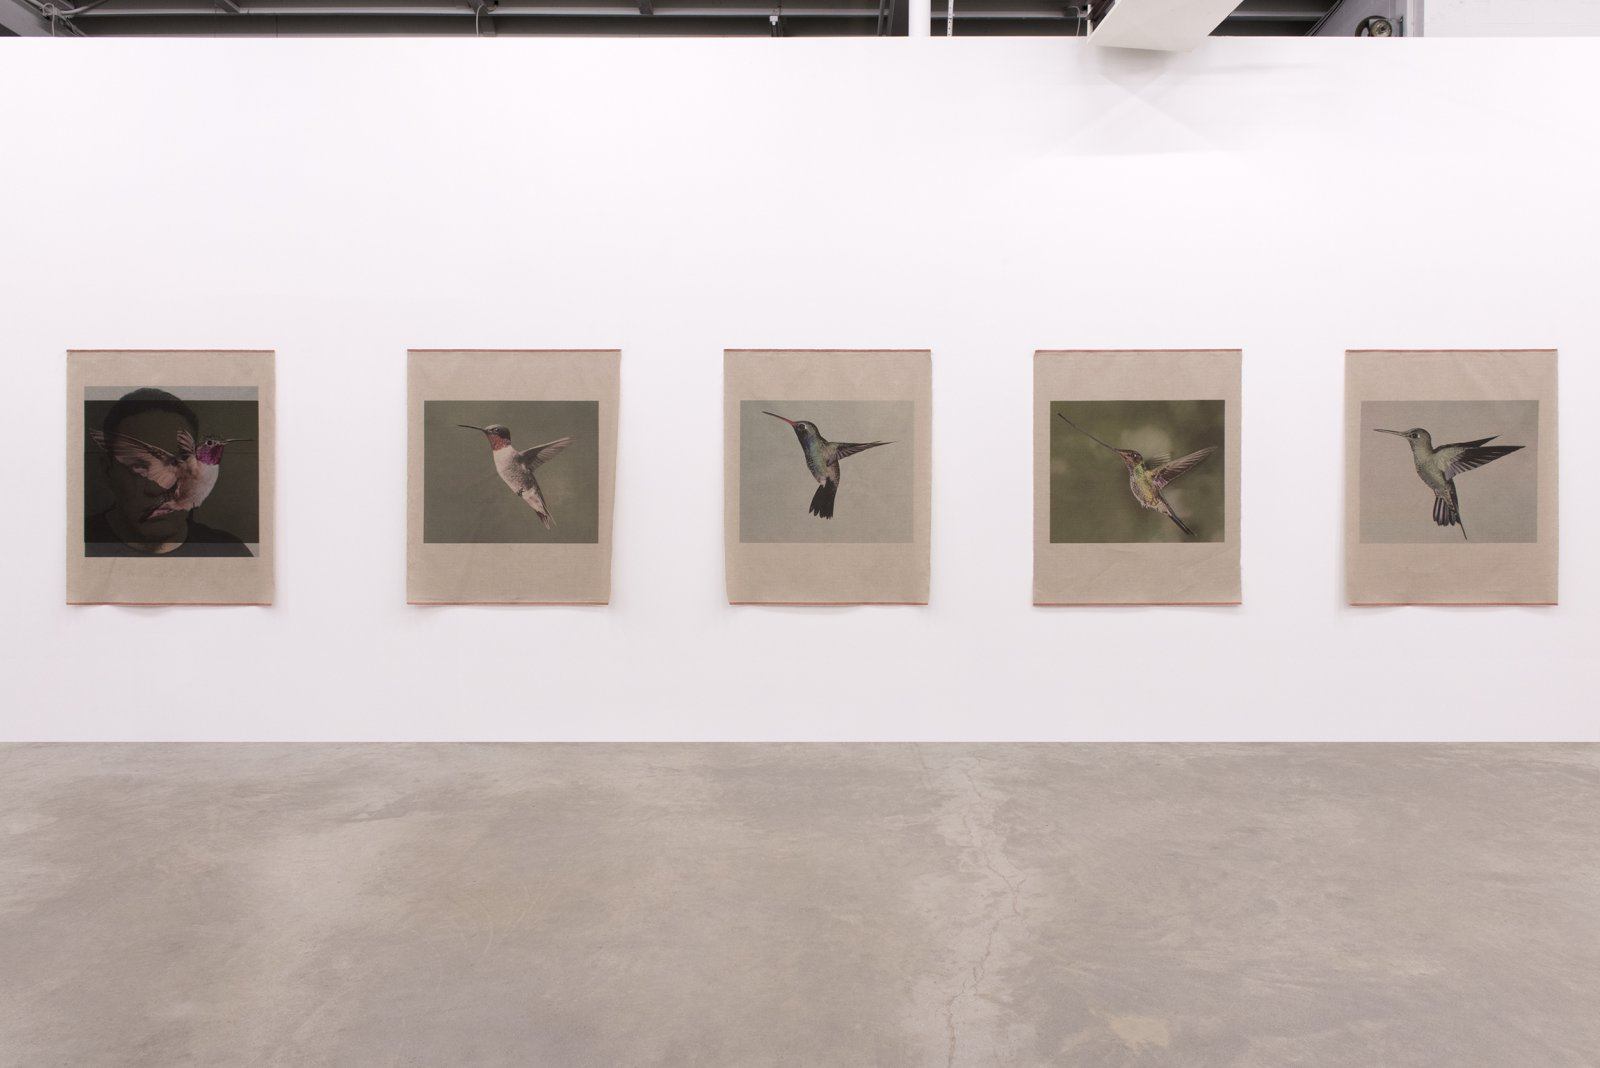 Duane Linklater, You chose feathers, 2014, 5 inkjet prints on linen, nails, each print: 54 x 43 inches (136 x 110 cm)